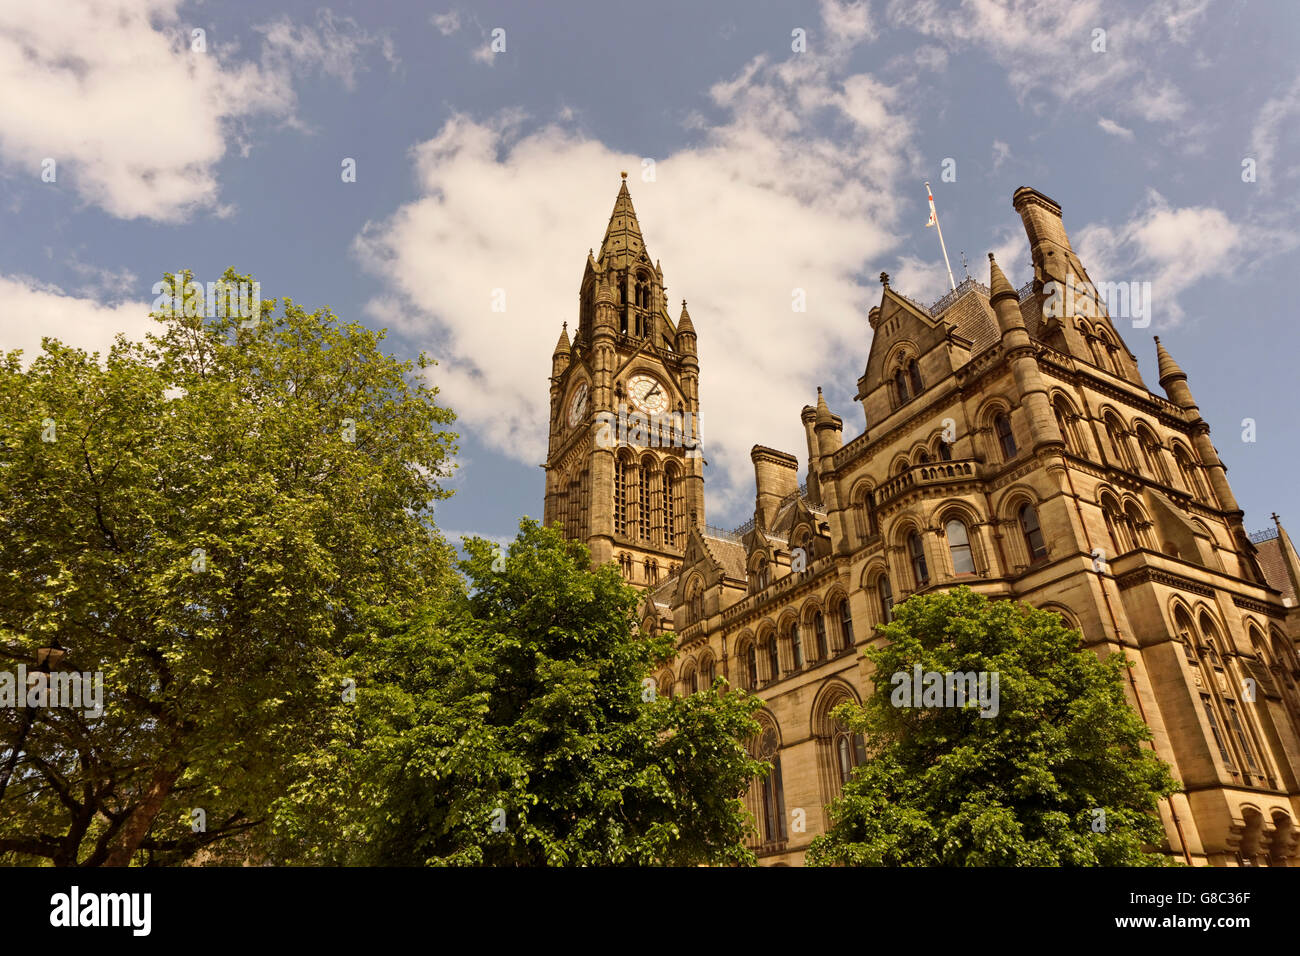 Manchester Town Hall, Albert Square, Manchester City Centre, England. - Stock Image